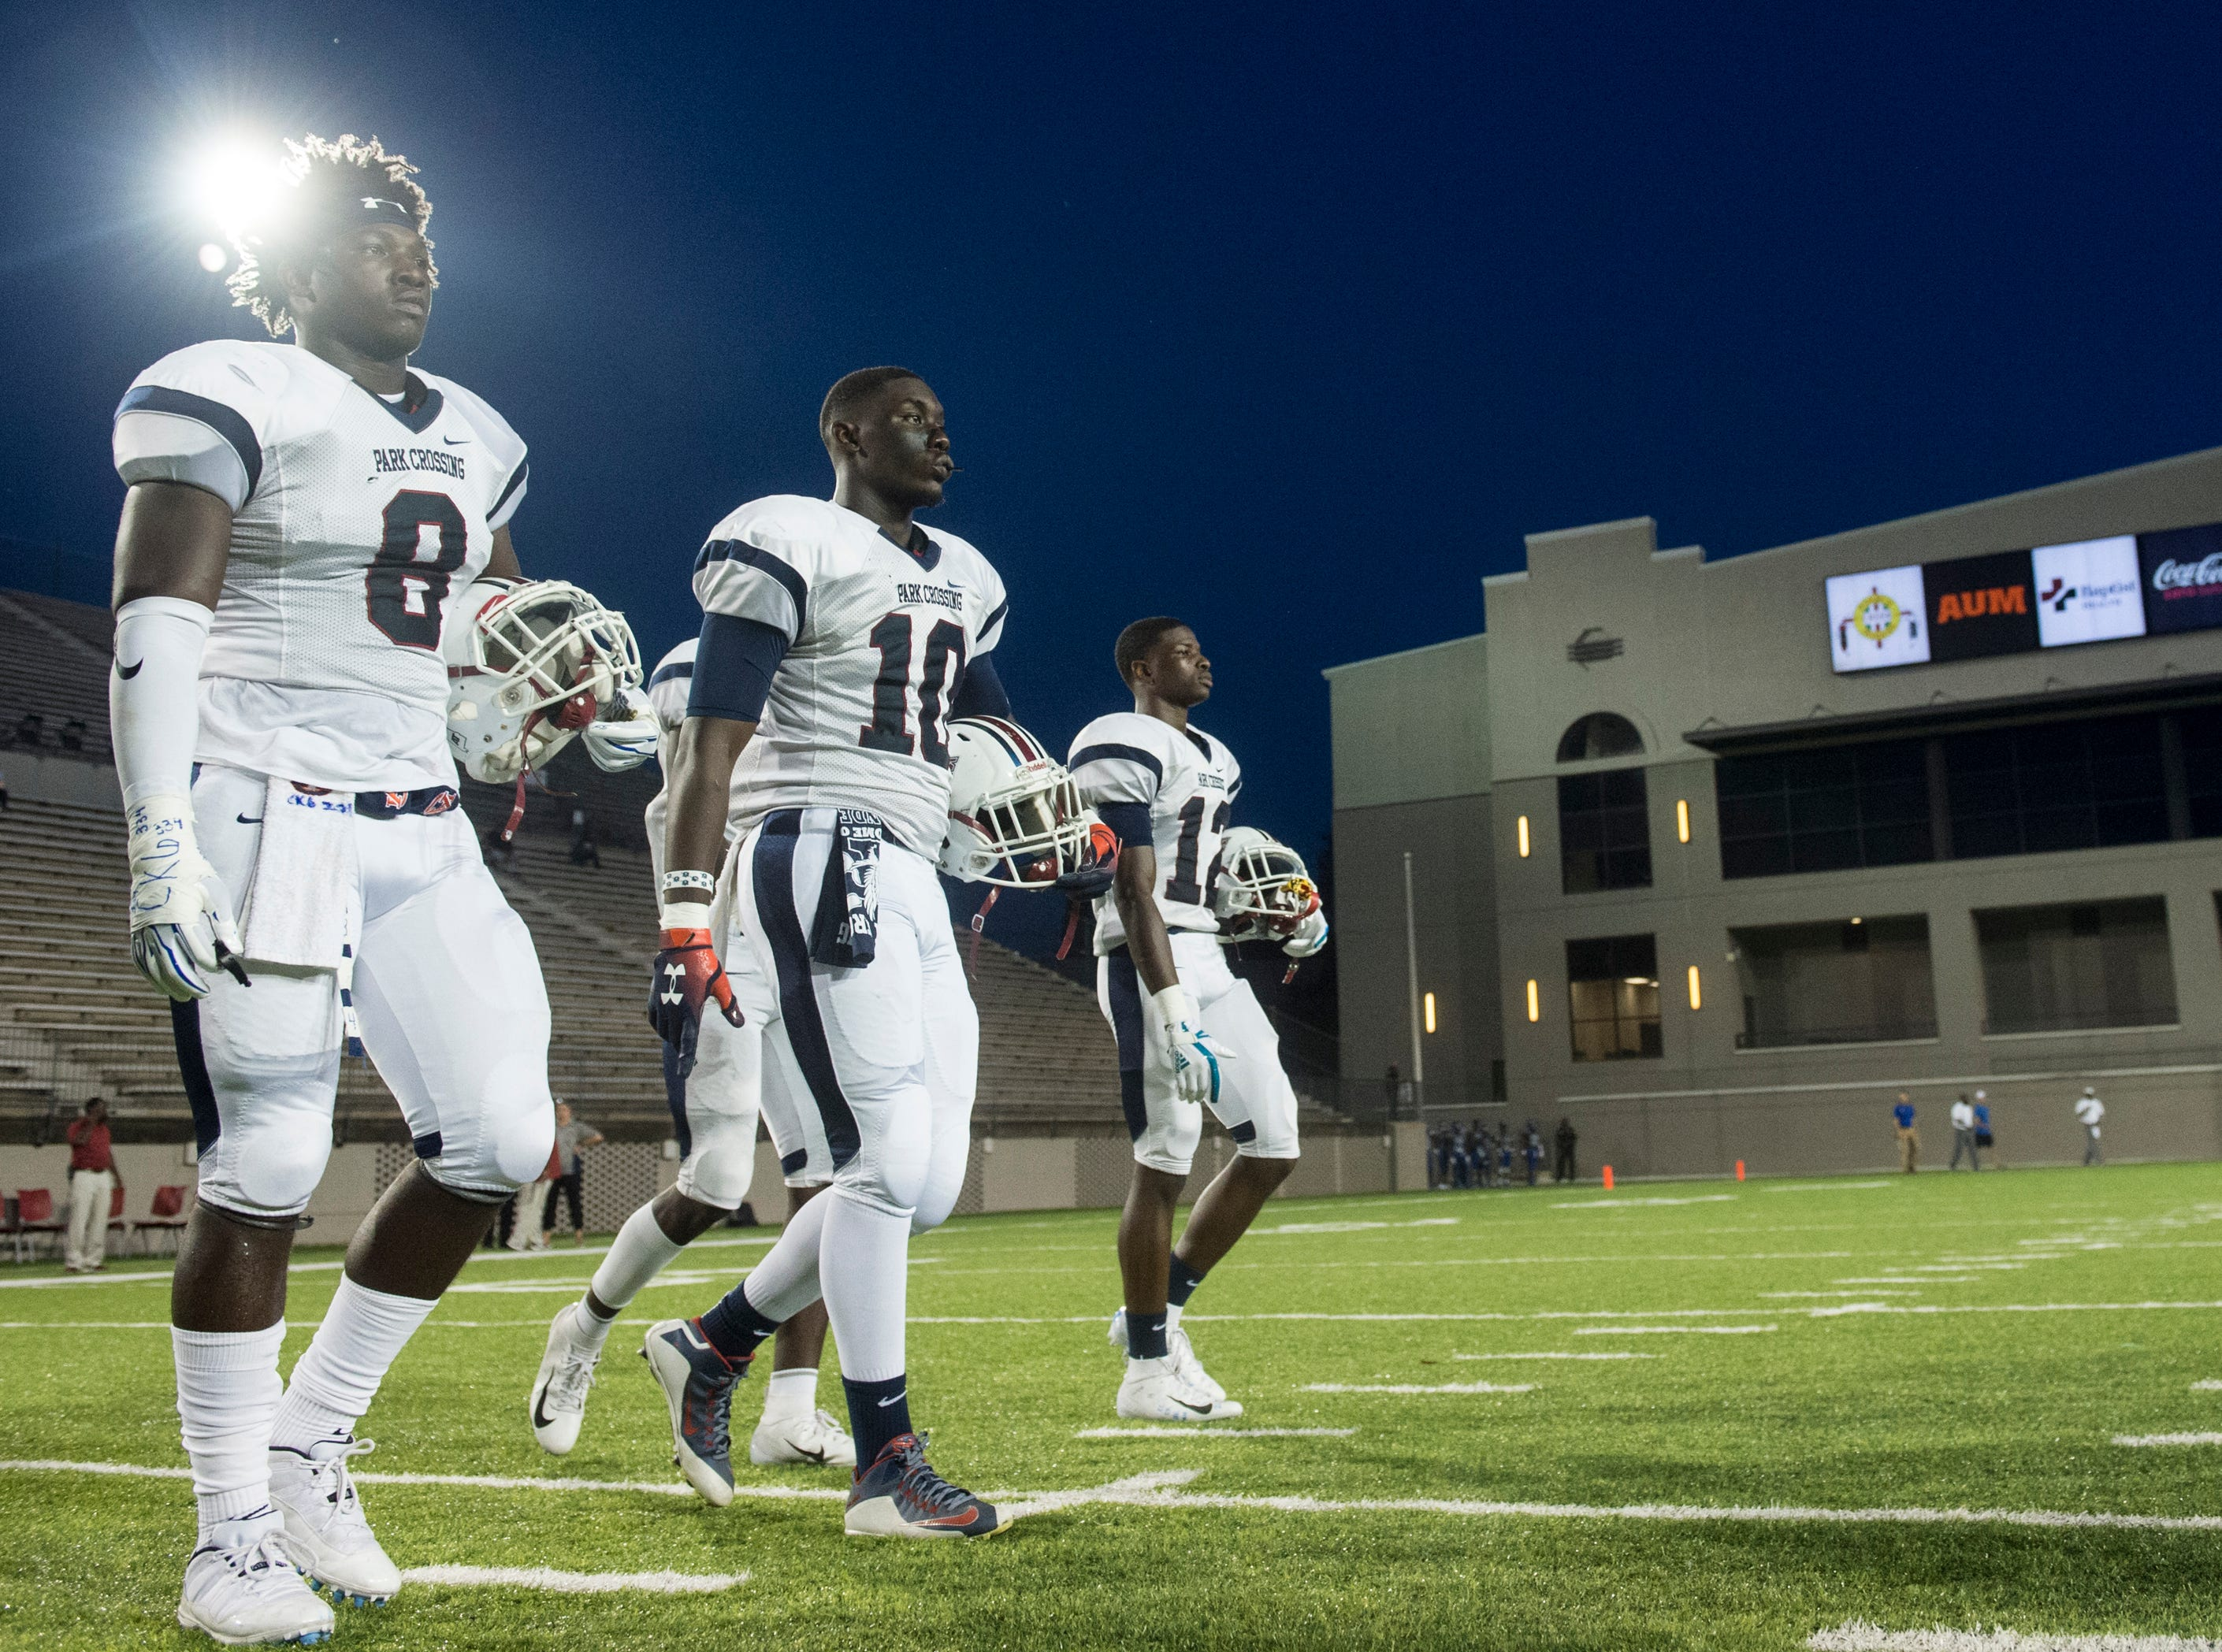 Park Crossing team captains walk to midfield for the coin toss at Cramton Bowl in Montgomery, Ala., on Friday, Sept. 21, 2018. Lanier leads Park Crossing 14-7 at halftime.